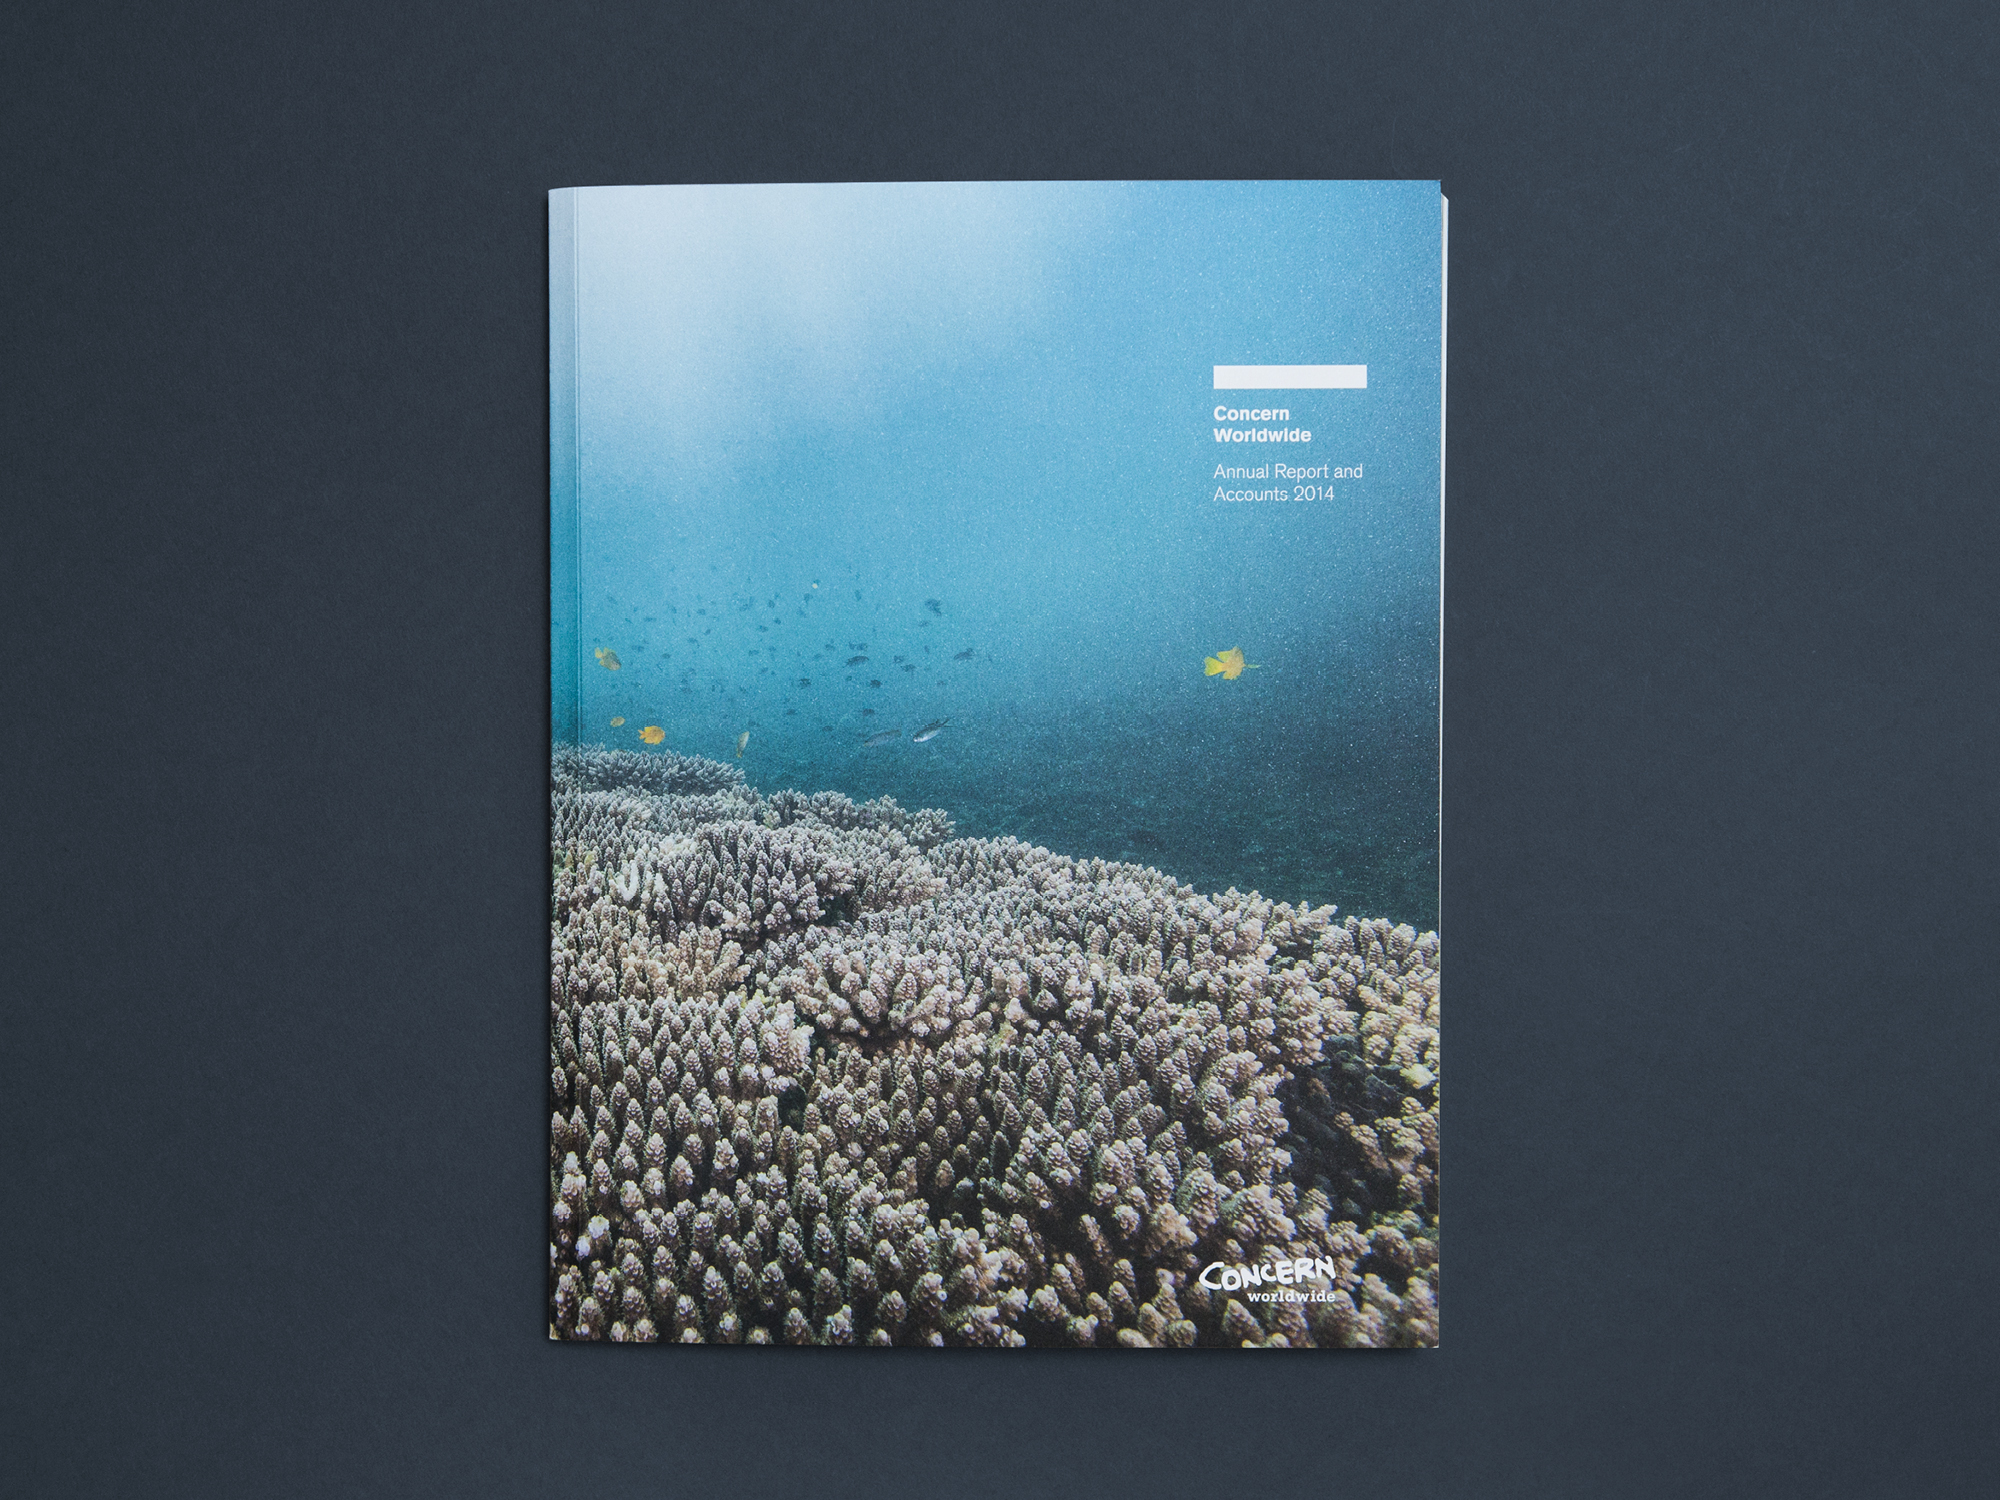 Cover image: Concern Worldwide Annual Report 2014 (2015)